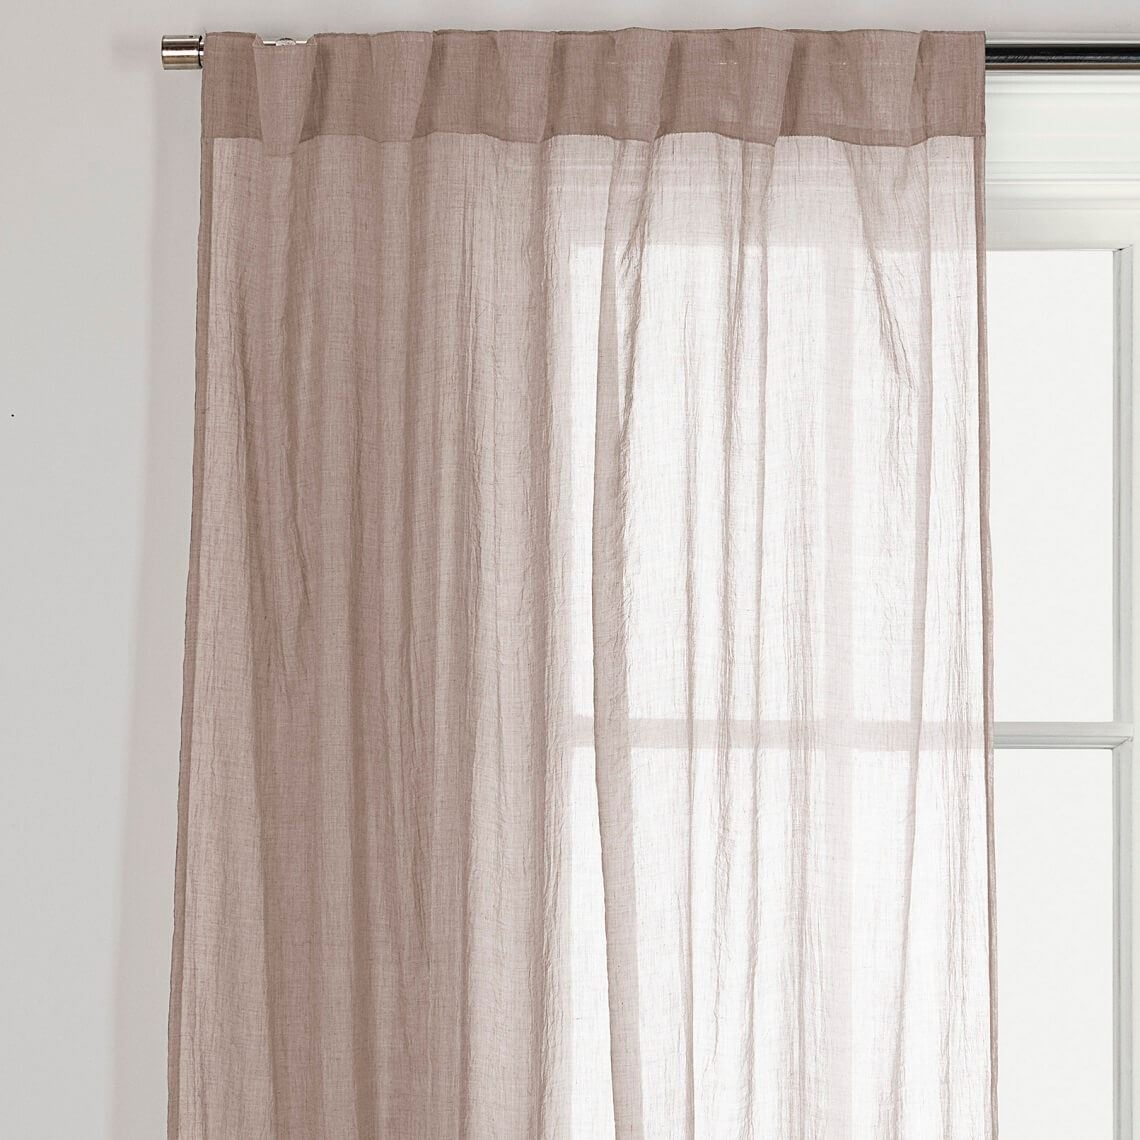 Short Drop Ready Made Curtains Australia Curtain Menzilperde With Regard To Short Drop Ready Made Curtains (View 11 of 15)